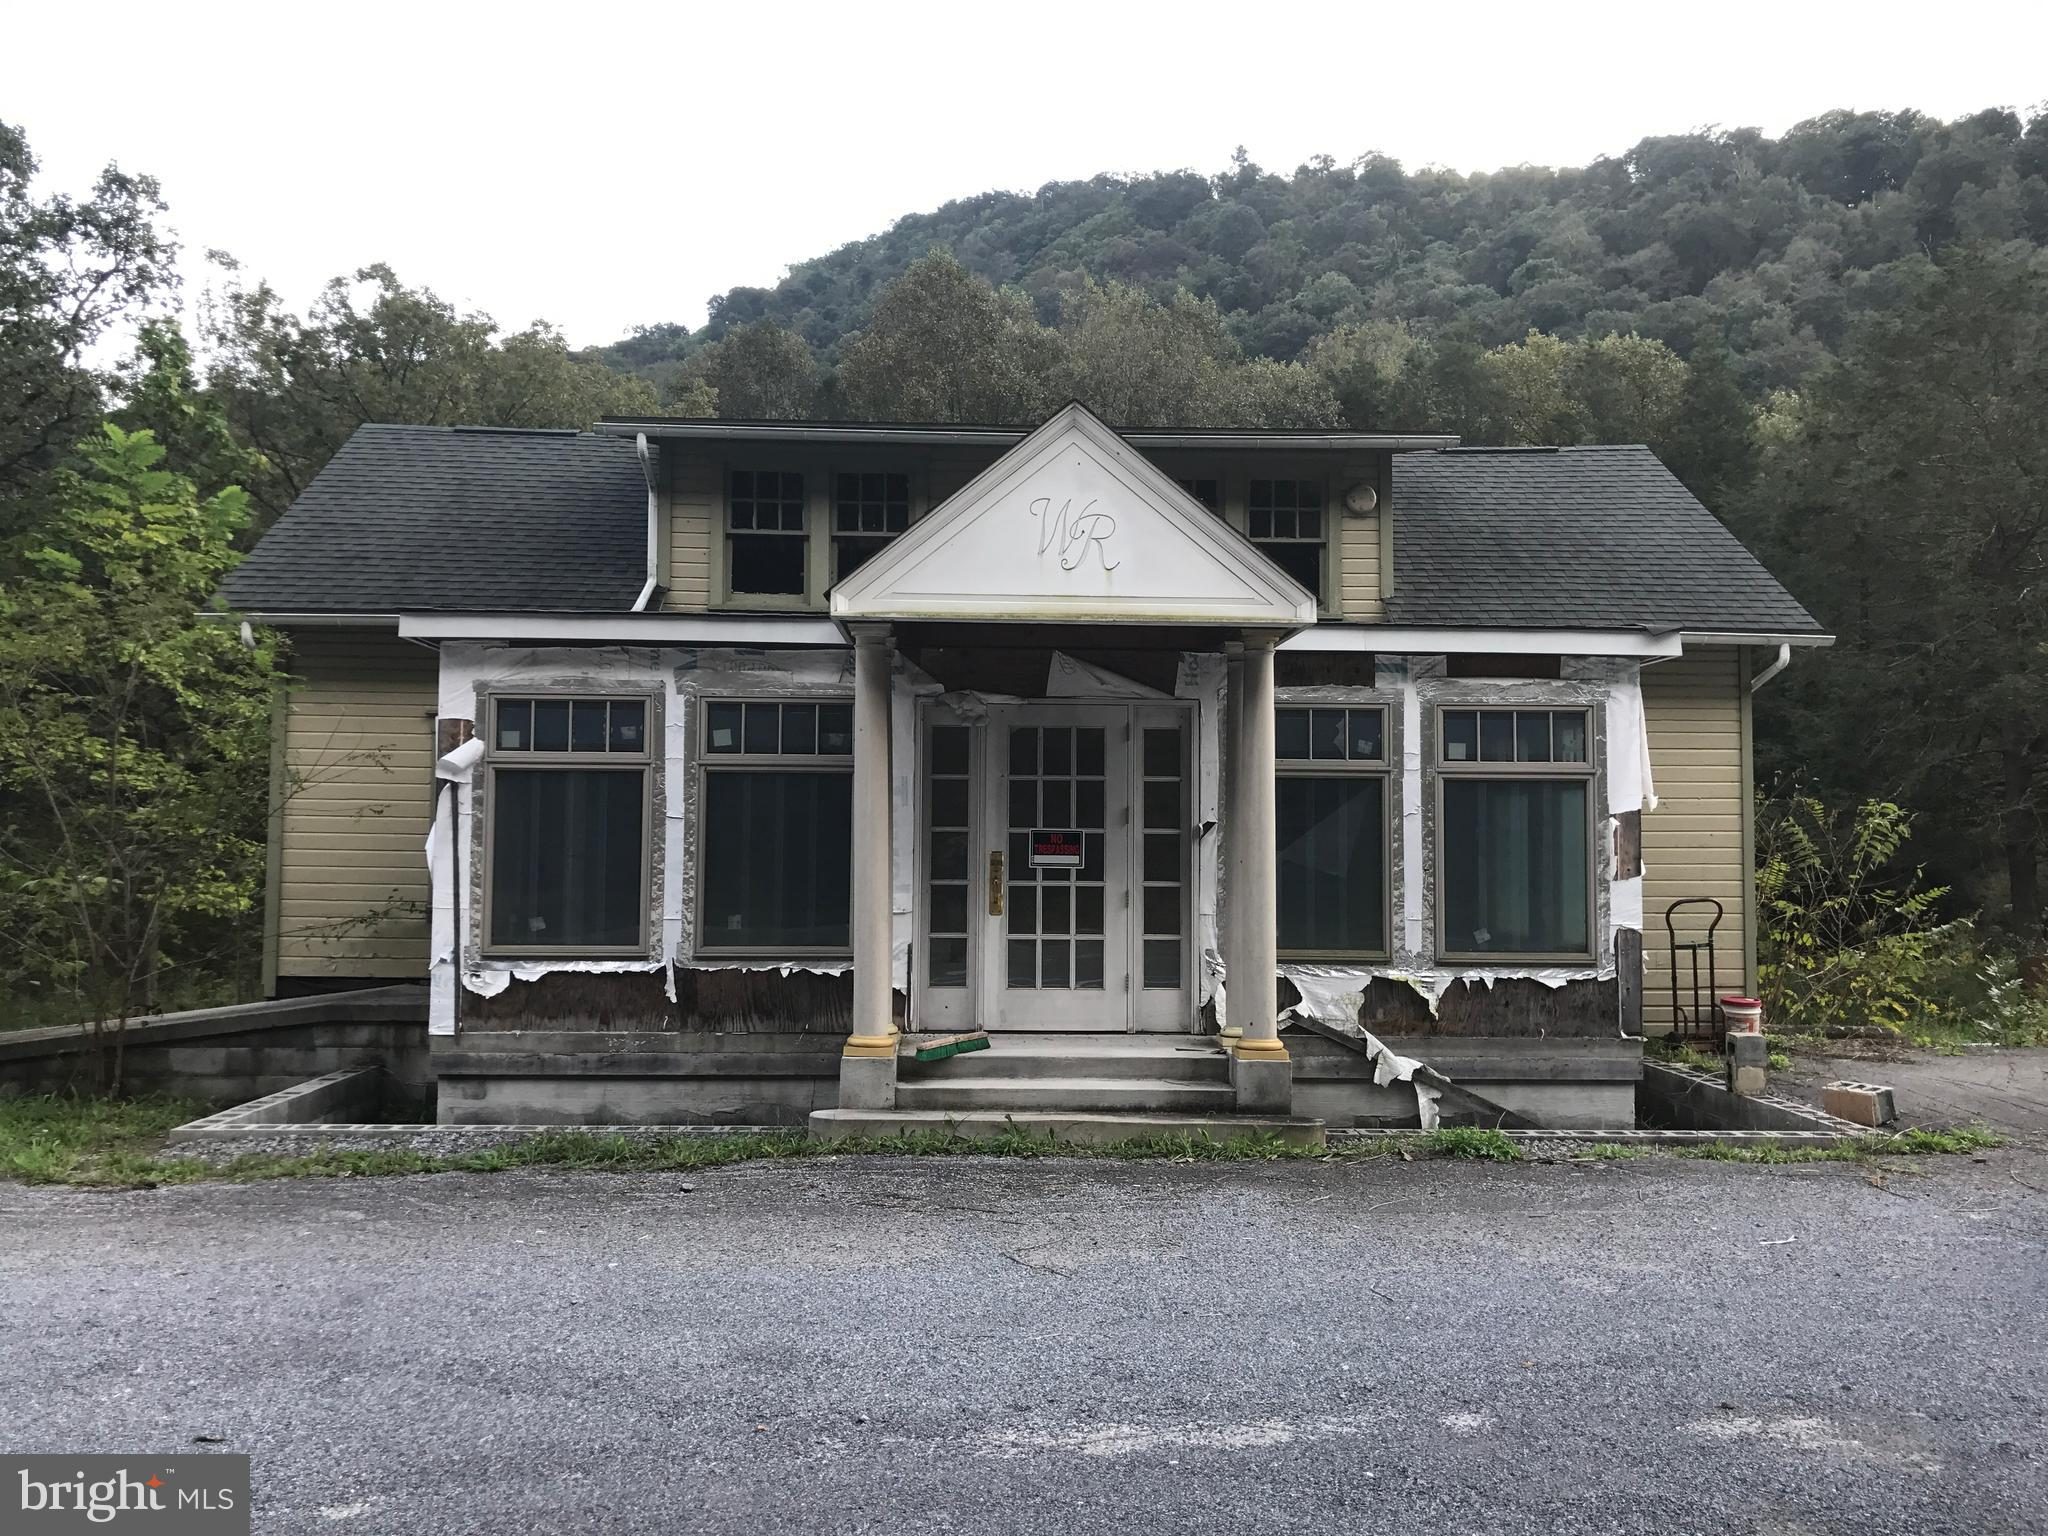 THIS PROPERTY IS GOING TO AUCTION ON 11/03/18 AT 11:00 A.M. THE LISTING PRICE IS A STARTING BID ONLY AND IS NOT INDICATIVE OF THE FINAL SALES PRICE. Approximately 7+/- acres with a commercial building that has been partially remodeled. Interior needs to be completed but has some newer restaurant equipment already inside. Property has septic and well. Potential for commercial use. Property to be sold as-is. Adjacent 47 +/- acres will be sold at auction the same day. Road frontage along New Grenada Highway and has creek frontage. Owner financing available. Huntingdon County Tax ID numbers: 09-15-07 and 09/15/08 and additional Tax ID #08-12-07. Taxes are estimated. Property is actually in Southern Huntingdon School District. Terms: $10,000.00